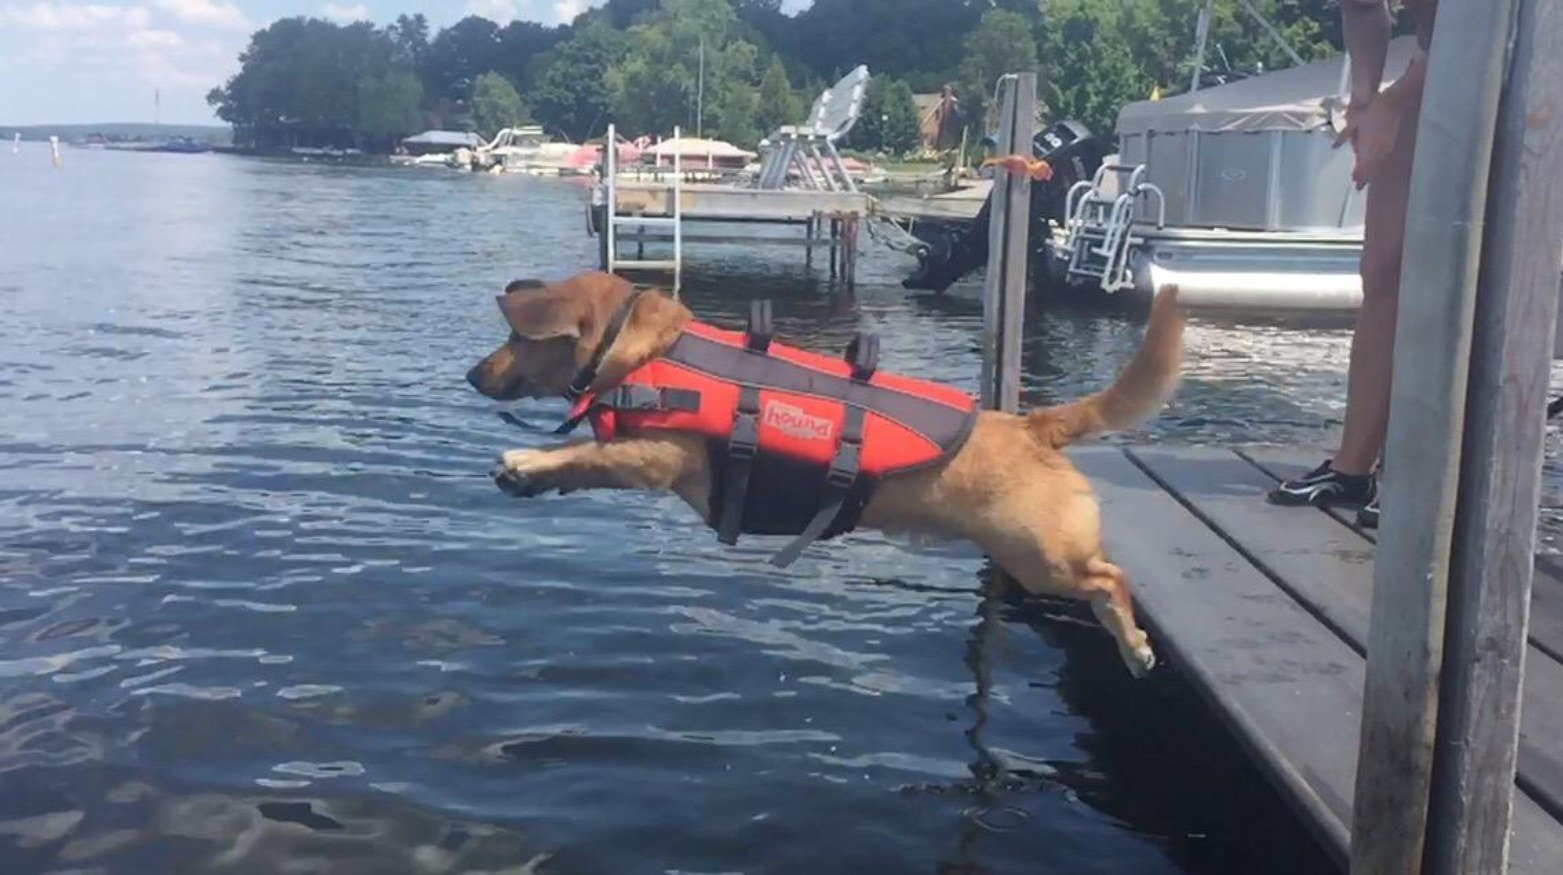 A dog jumping into a lake with the life jacket on